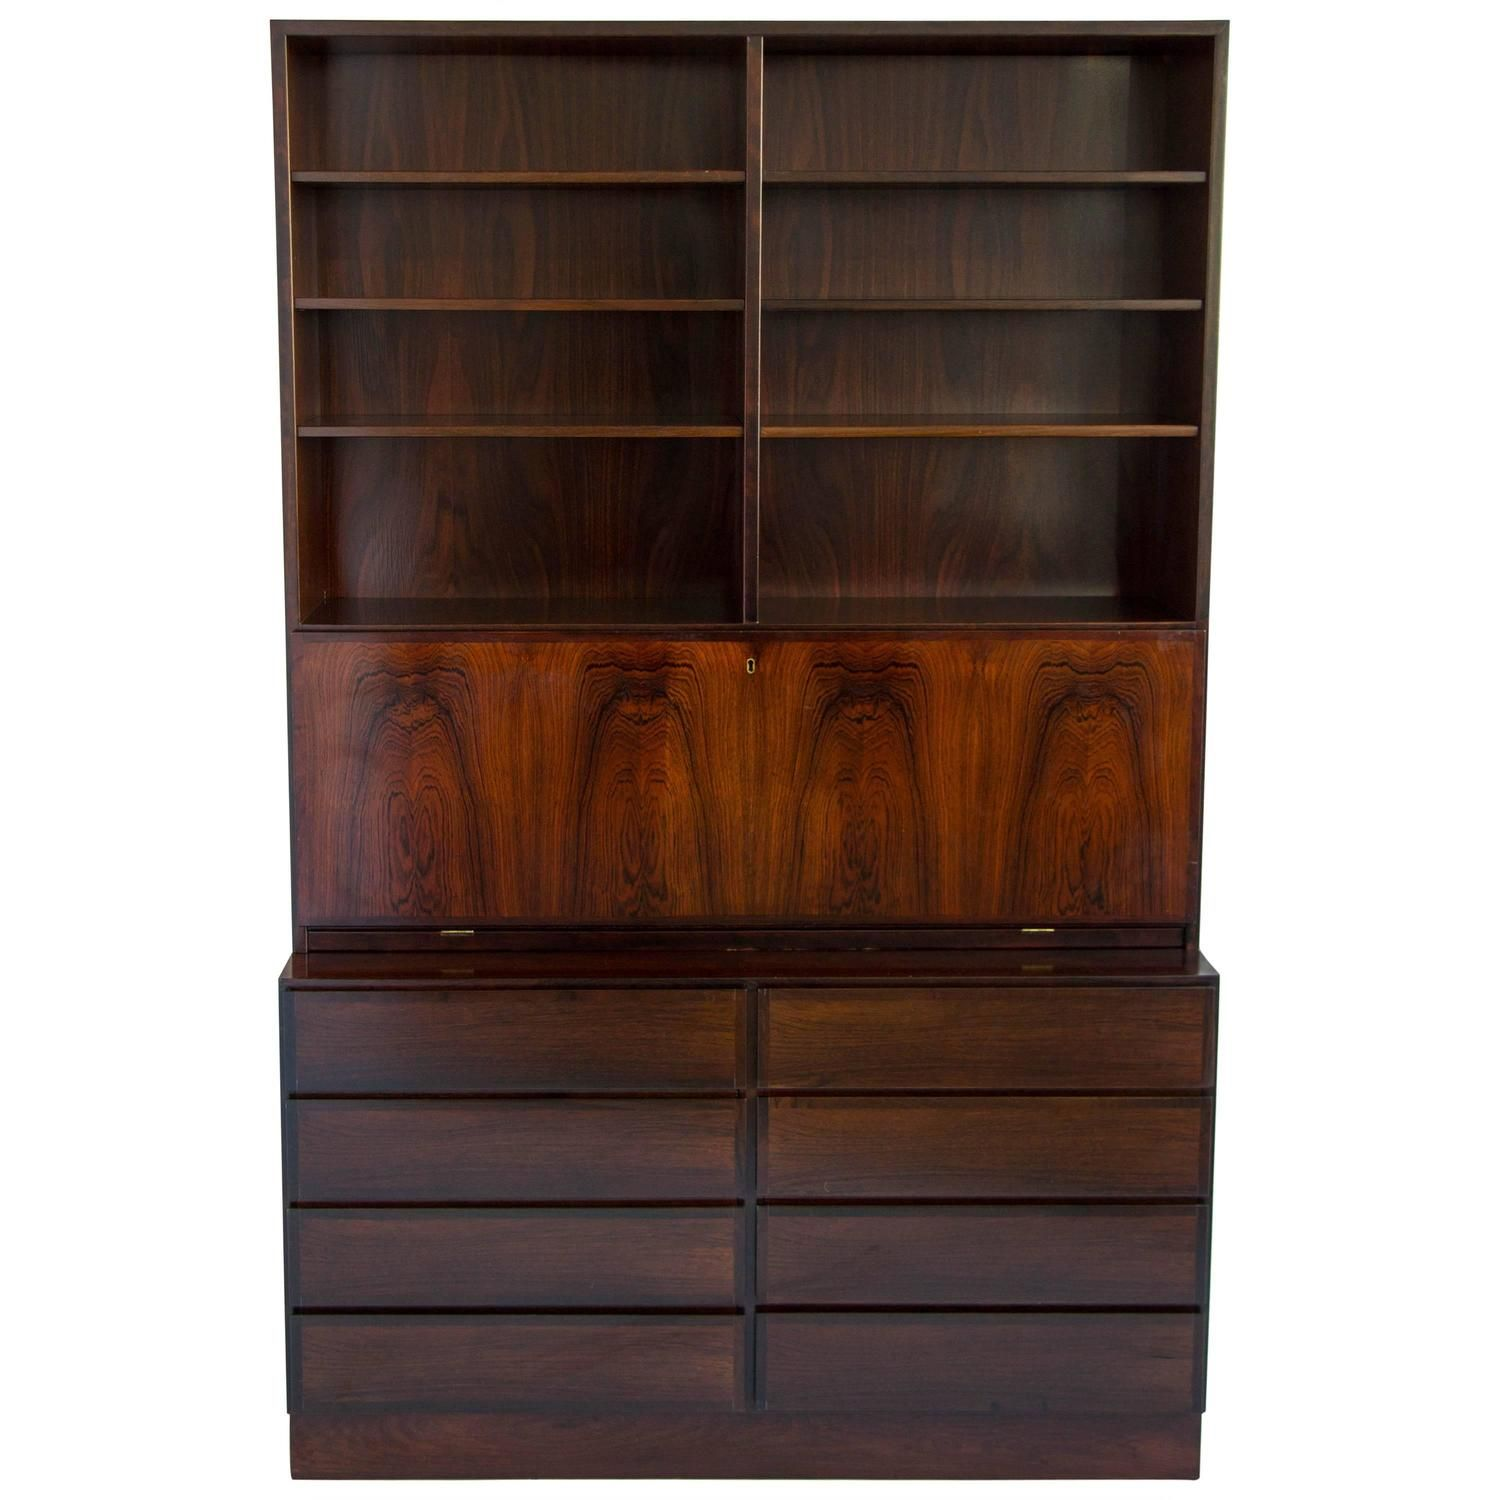 Gunni Oman Rosewood Desk And Shelving Unit - 1Stdibscom